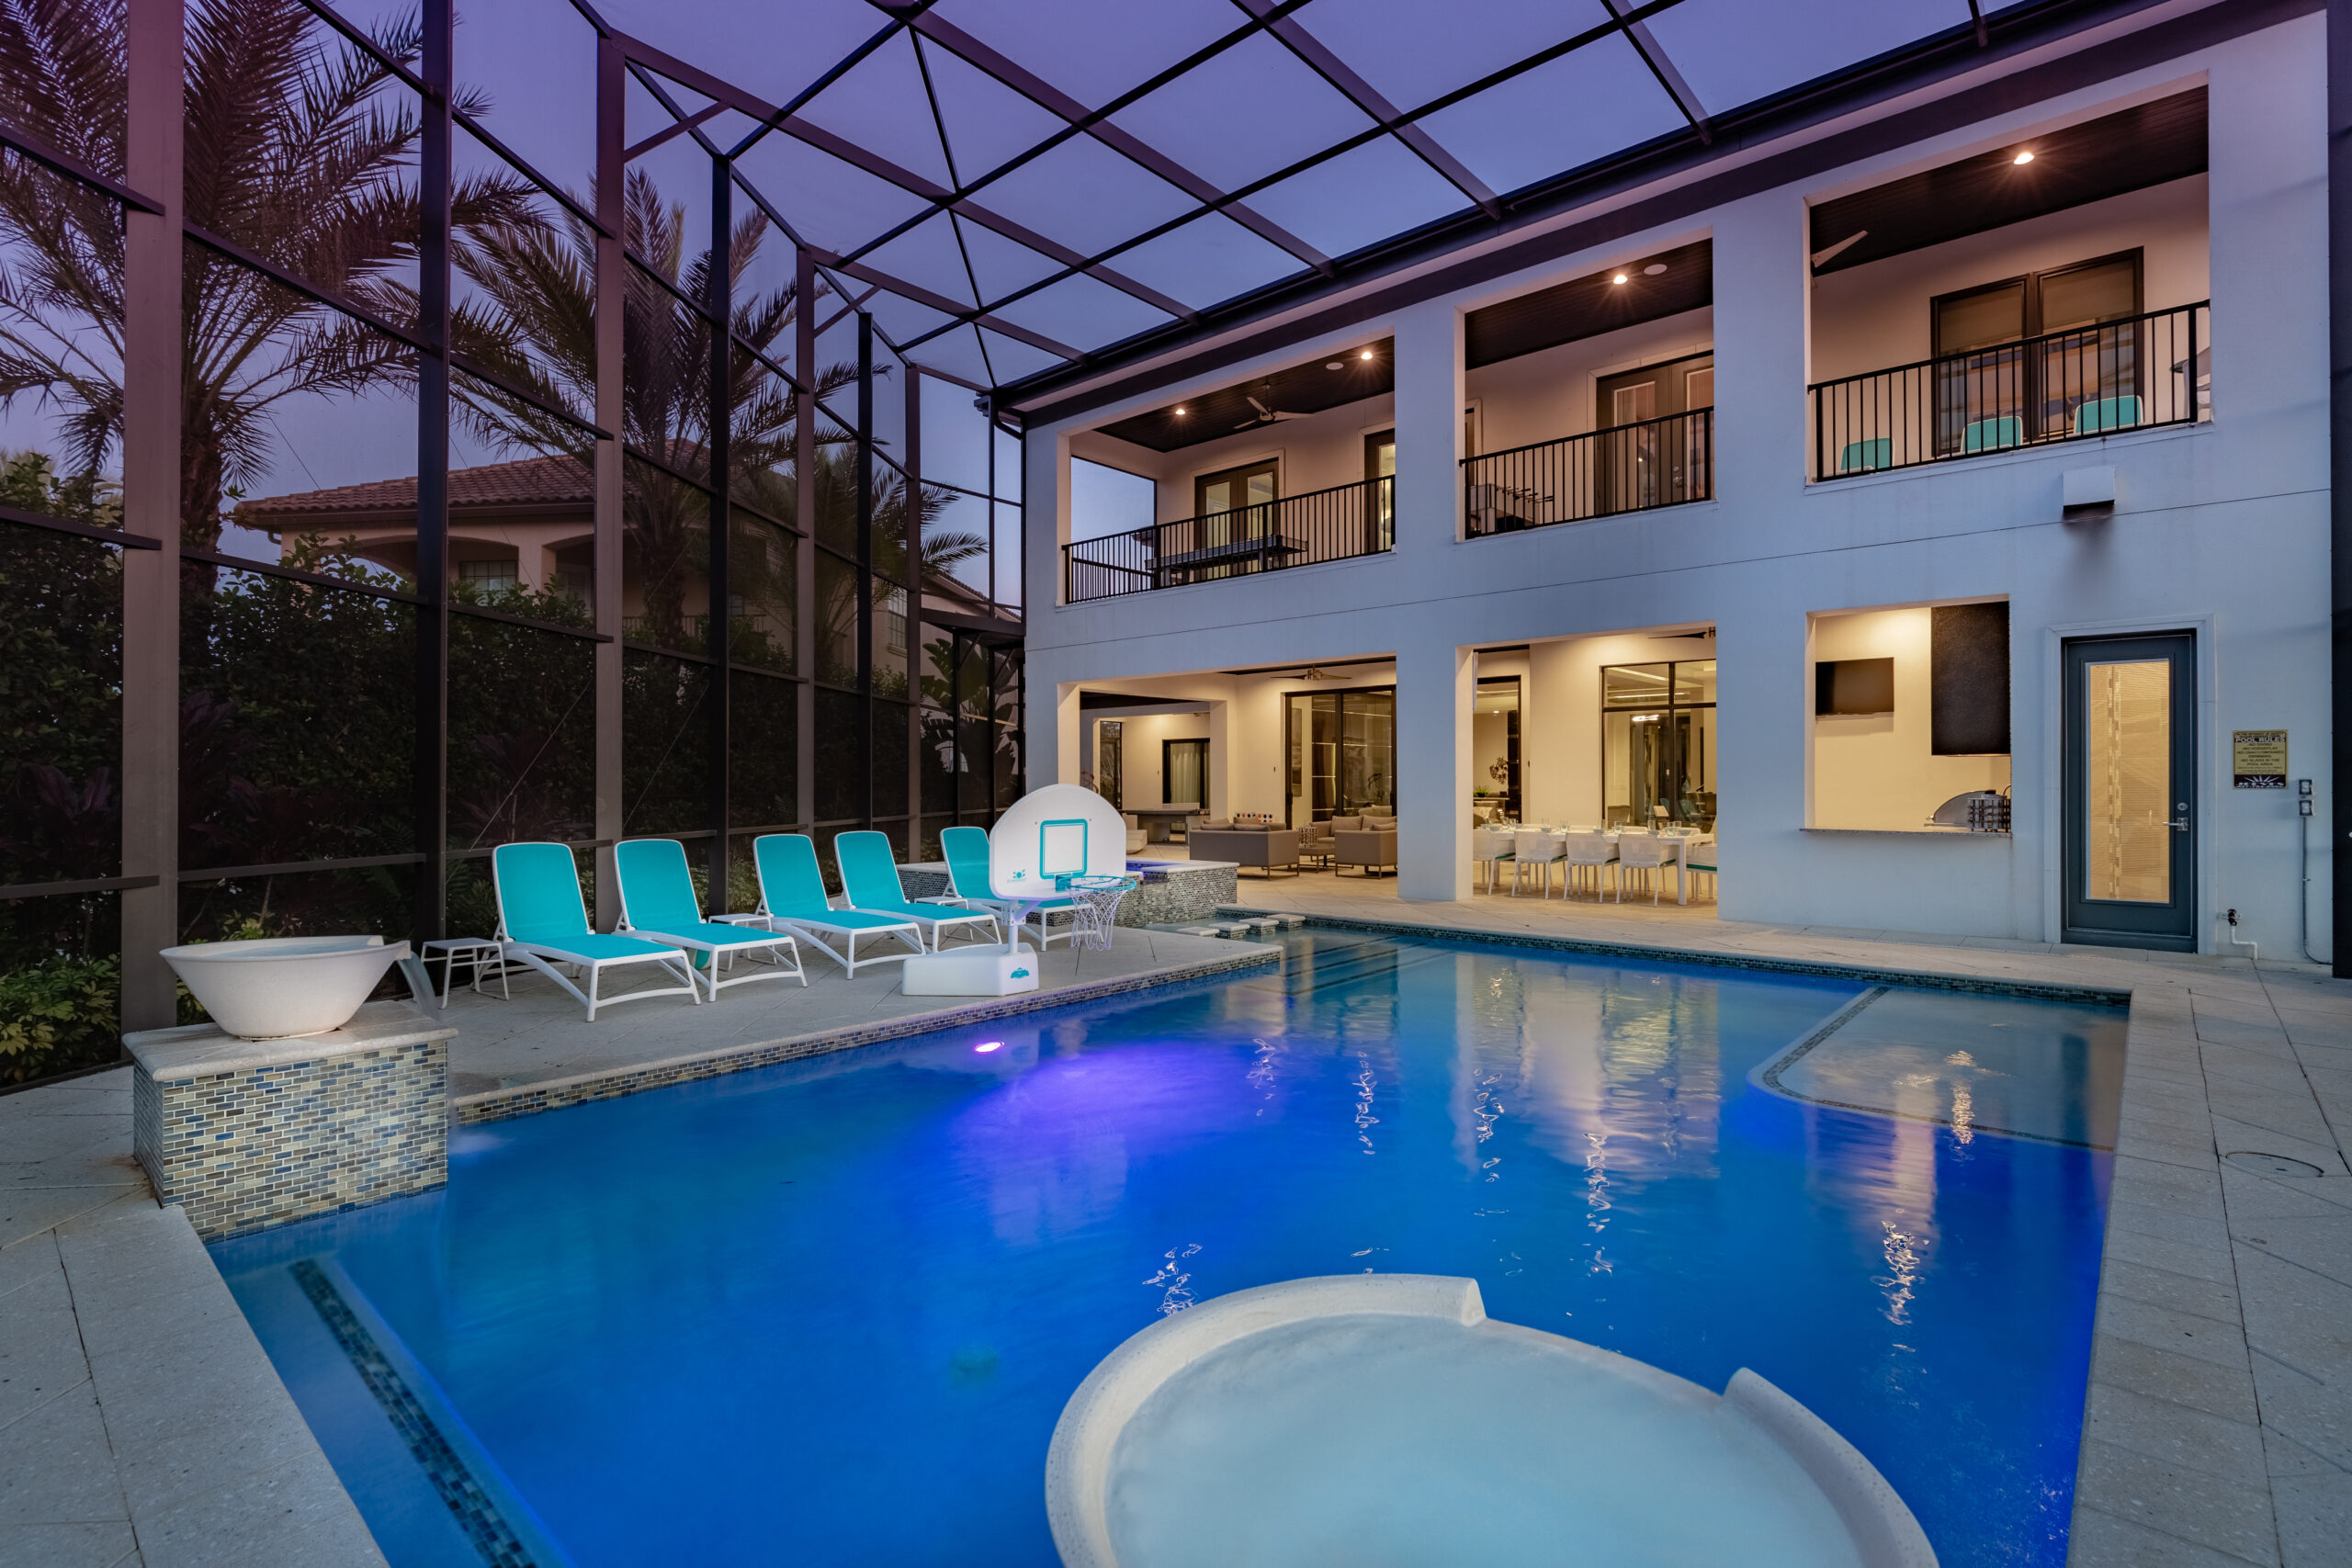 Reunion resort amenities make your next vacation luxury with these world class amenities